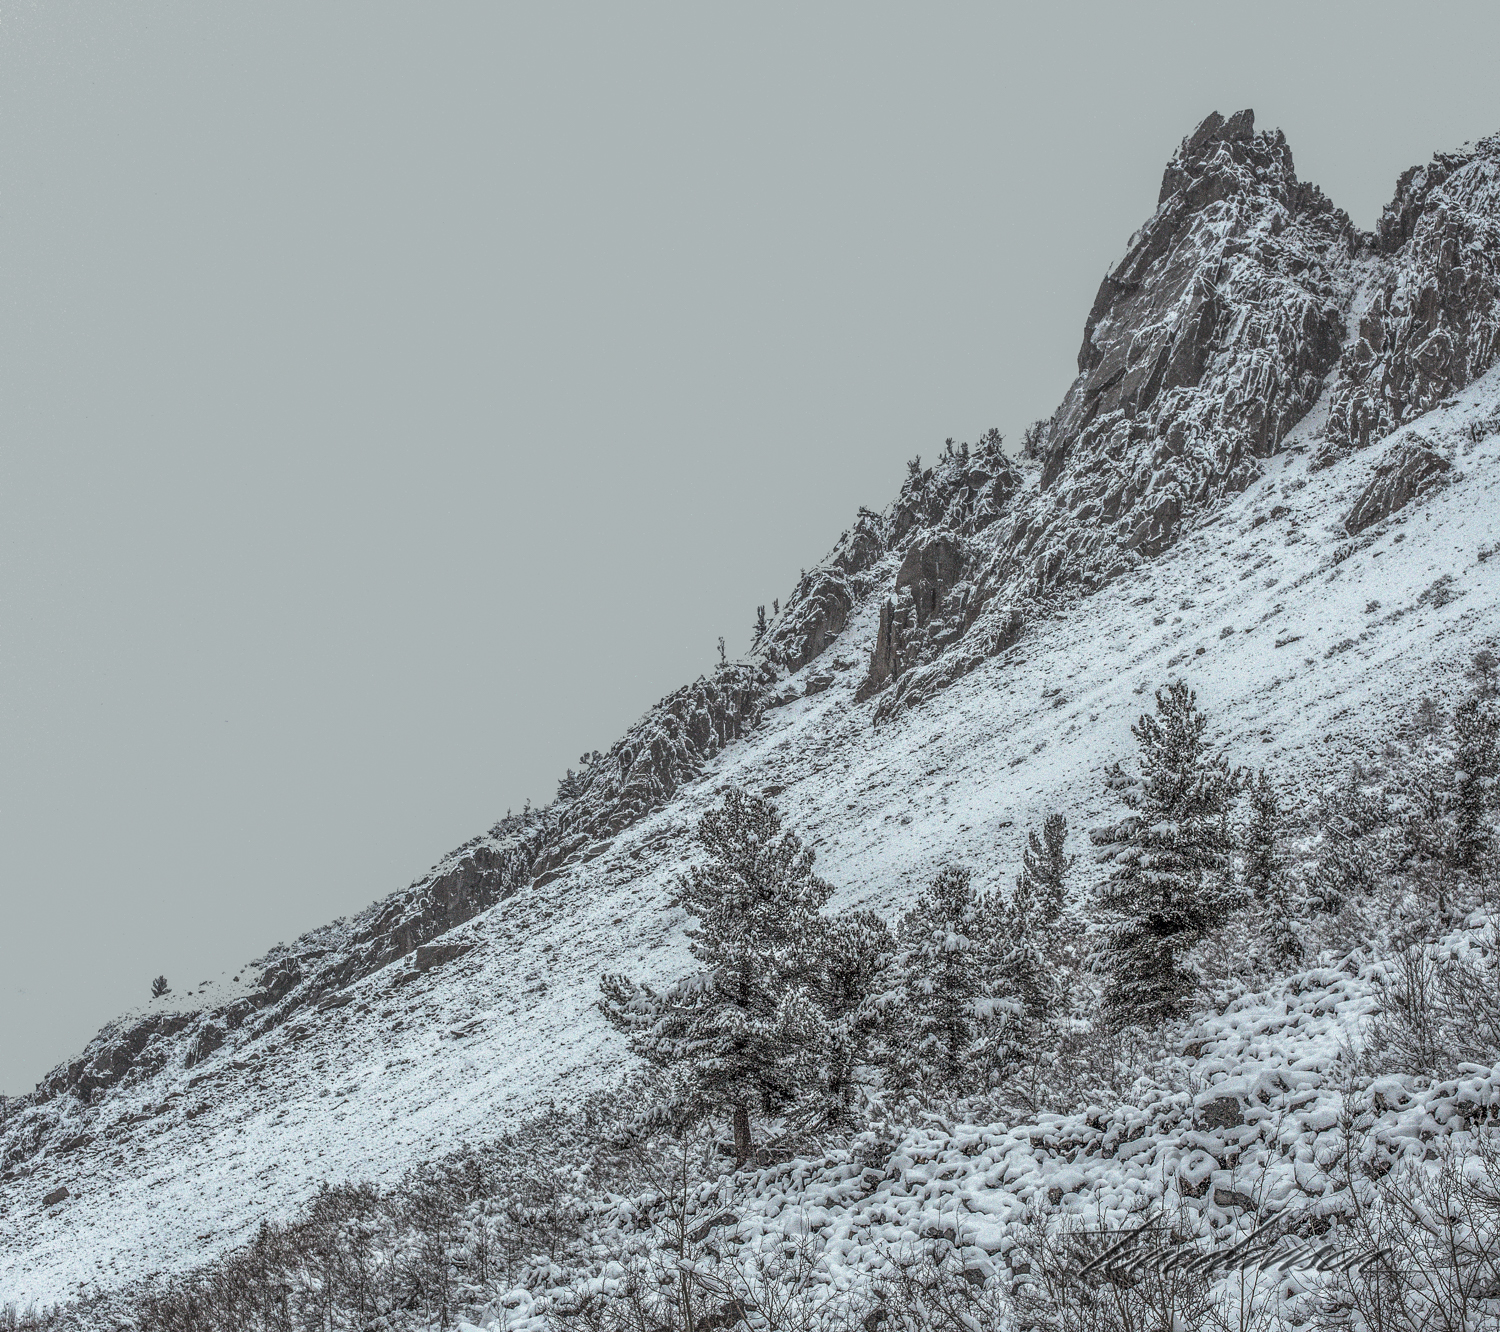 As we went up the mountain towards Lake Sabrina the snowfall was heavier. Fortunately the snow plows were keeping it clear and we just took the road slowly, willing to turn around any time it got uncomfortable.